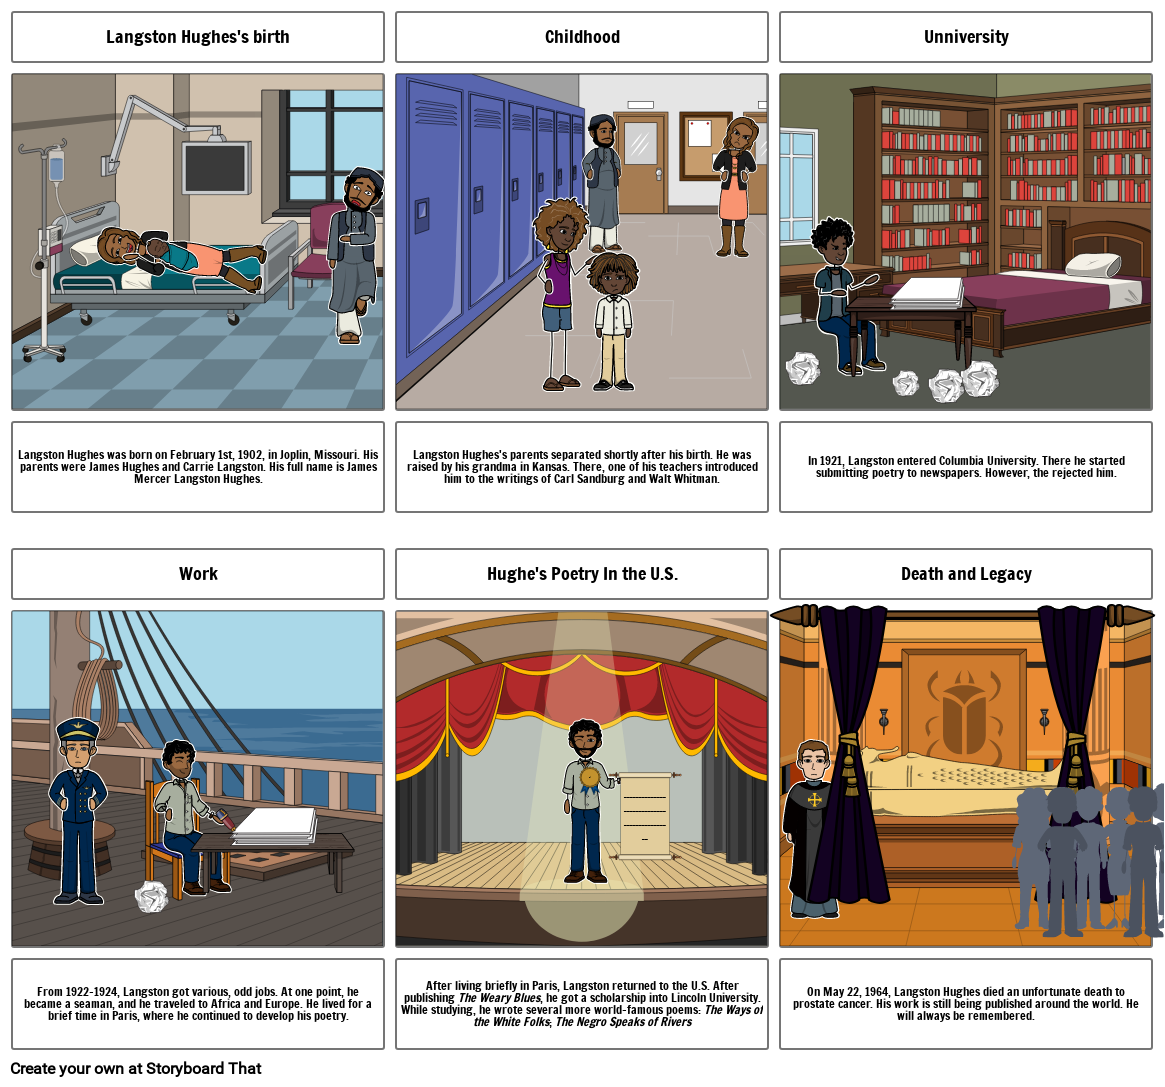 The life and Legacy of Langston Hughes